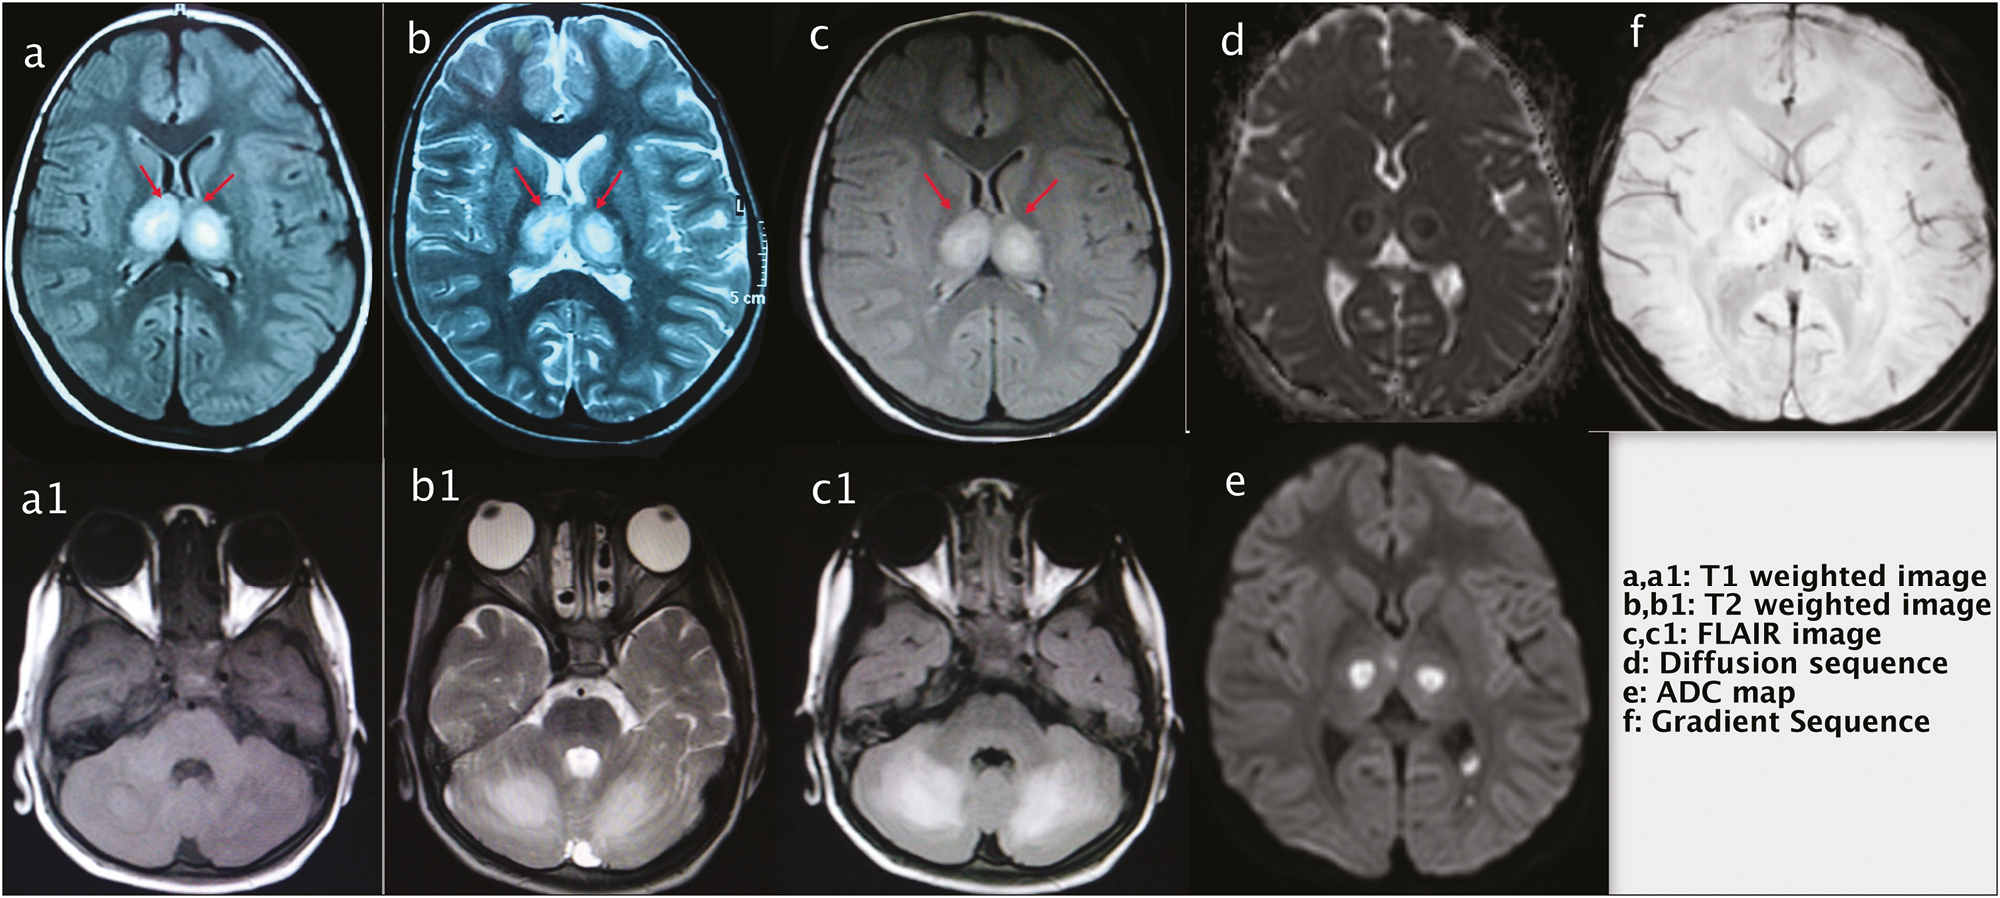 Figure 2: Axial sections of MRI of brain of a patient with acute necrotizing hemorrhagic encephalitis. T1-weighted image (a and a1), T2-weighted image (b and b1), and fluid attenuated inversion recovery (FLAIR) image (c and c1) show symmetrical hyperintensities in bilateral thalami and cerebellar hemispheres. Axial sections of MRI brain diffusion sequence (d), apparent diffusion coefficient (ADC) map (e), and gradient sequence (f) at the level of bilateral thalami showing restricted diffusion (d) and corresponding low ADC value (e) in bilateral thalami suggestive of cytotoxic edema. Few foci of blooming are seen in bilateral thalami on gradient sequence (f) suggestive of haemorrhage. Red arrows showing symmetrical hyperintensities in bilateral thalami